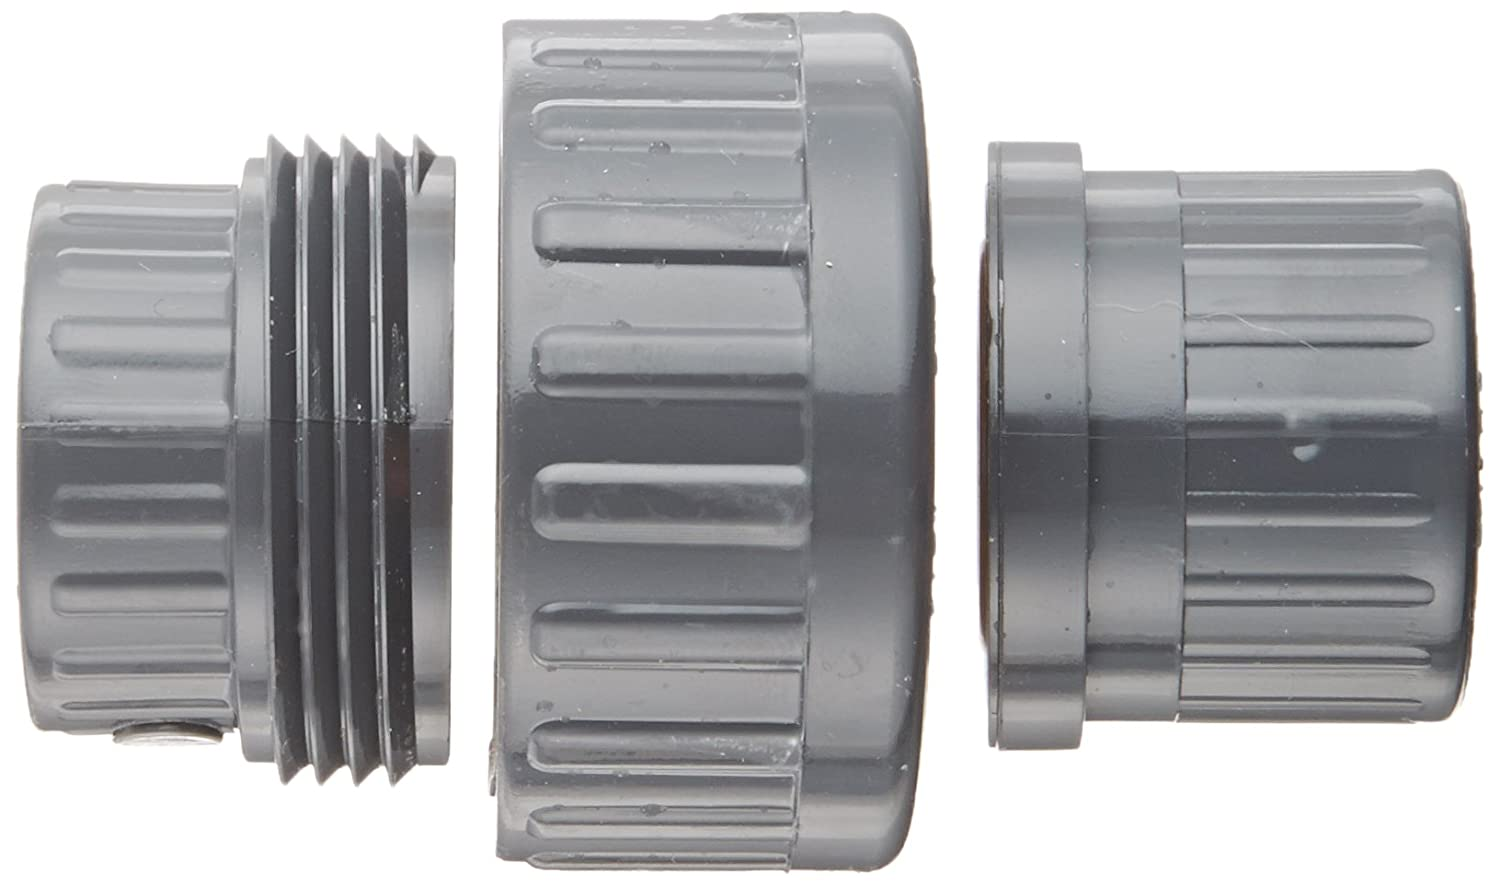 Union with Viton O-Ring Spears 858 Series PVC Pipe Fitting Schedule 80 1//2 NPT Female